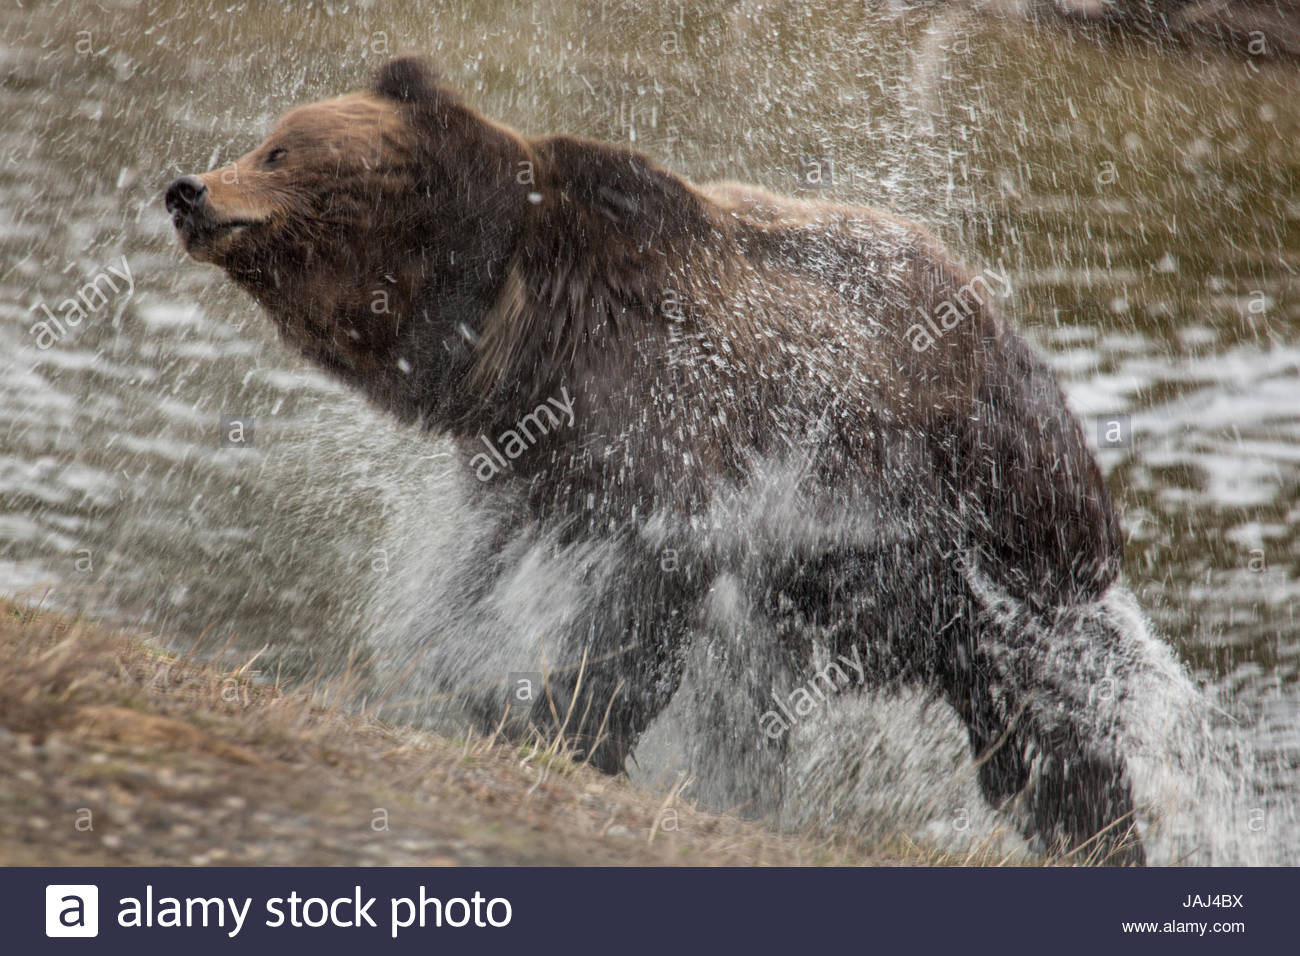 A grizzly bear shakes off water in Yellowstone National Park's Upper Geyser Basin. - Stock Image